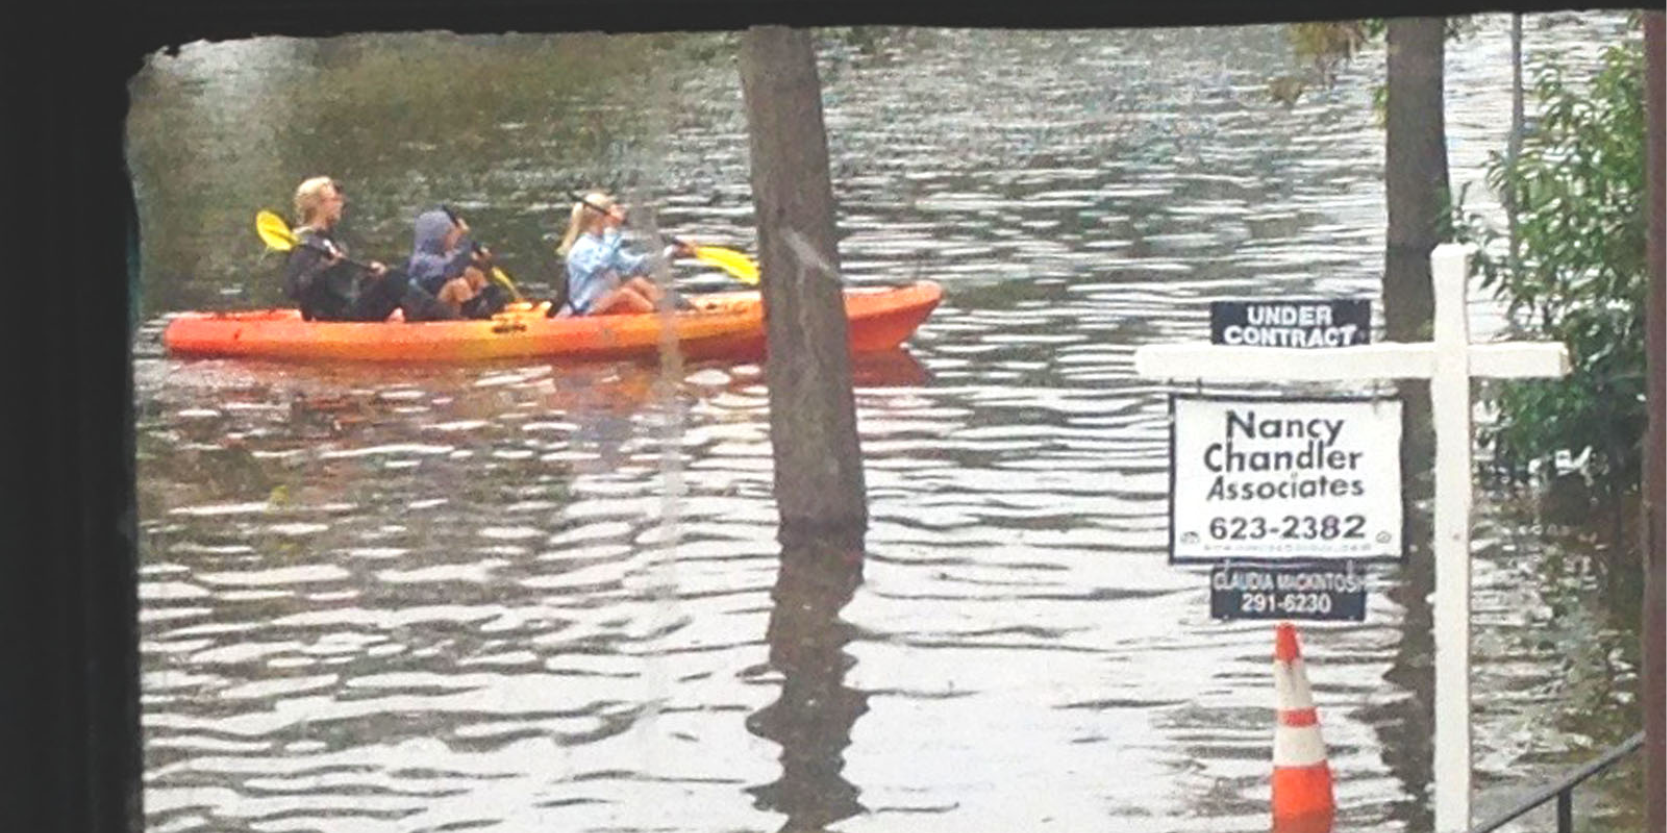 Three people on a kayak passing a for sale real estate sign in flooded area in southeastern Virginia.